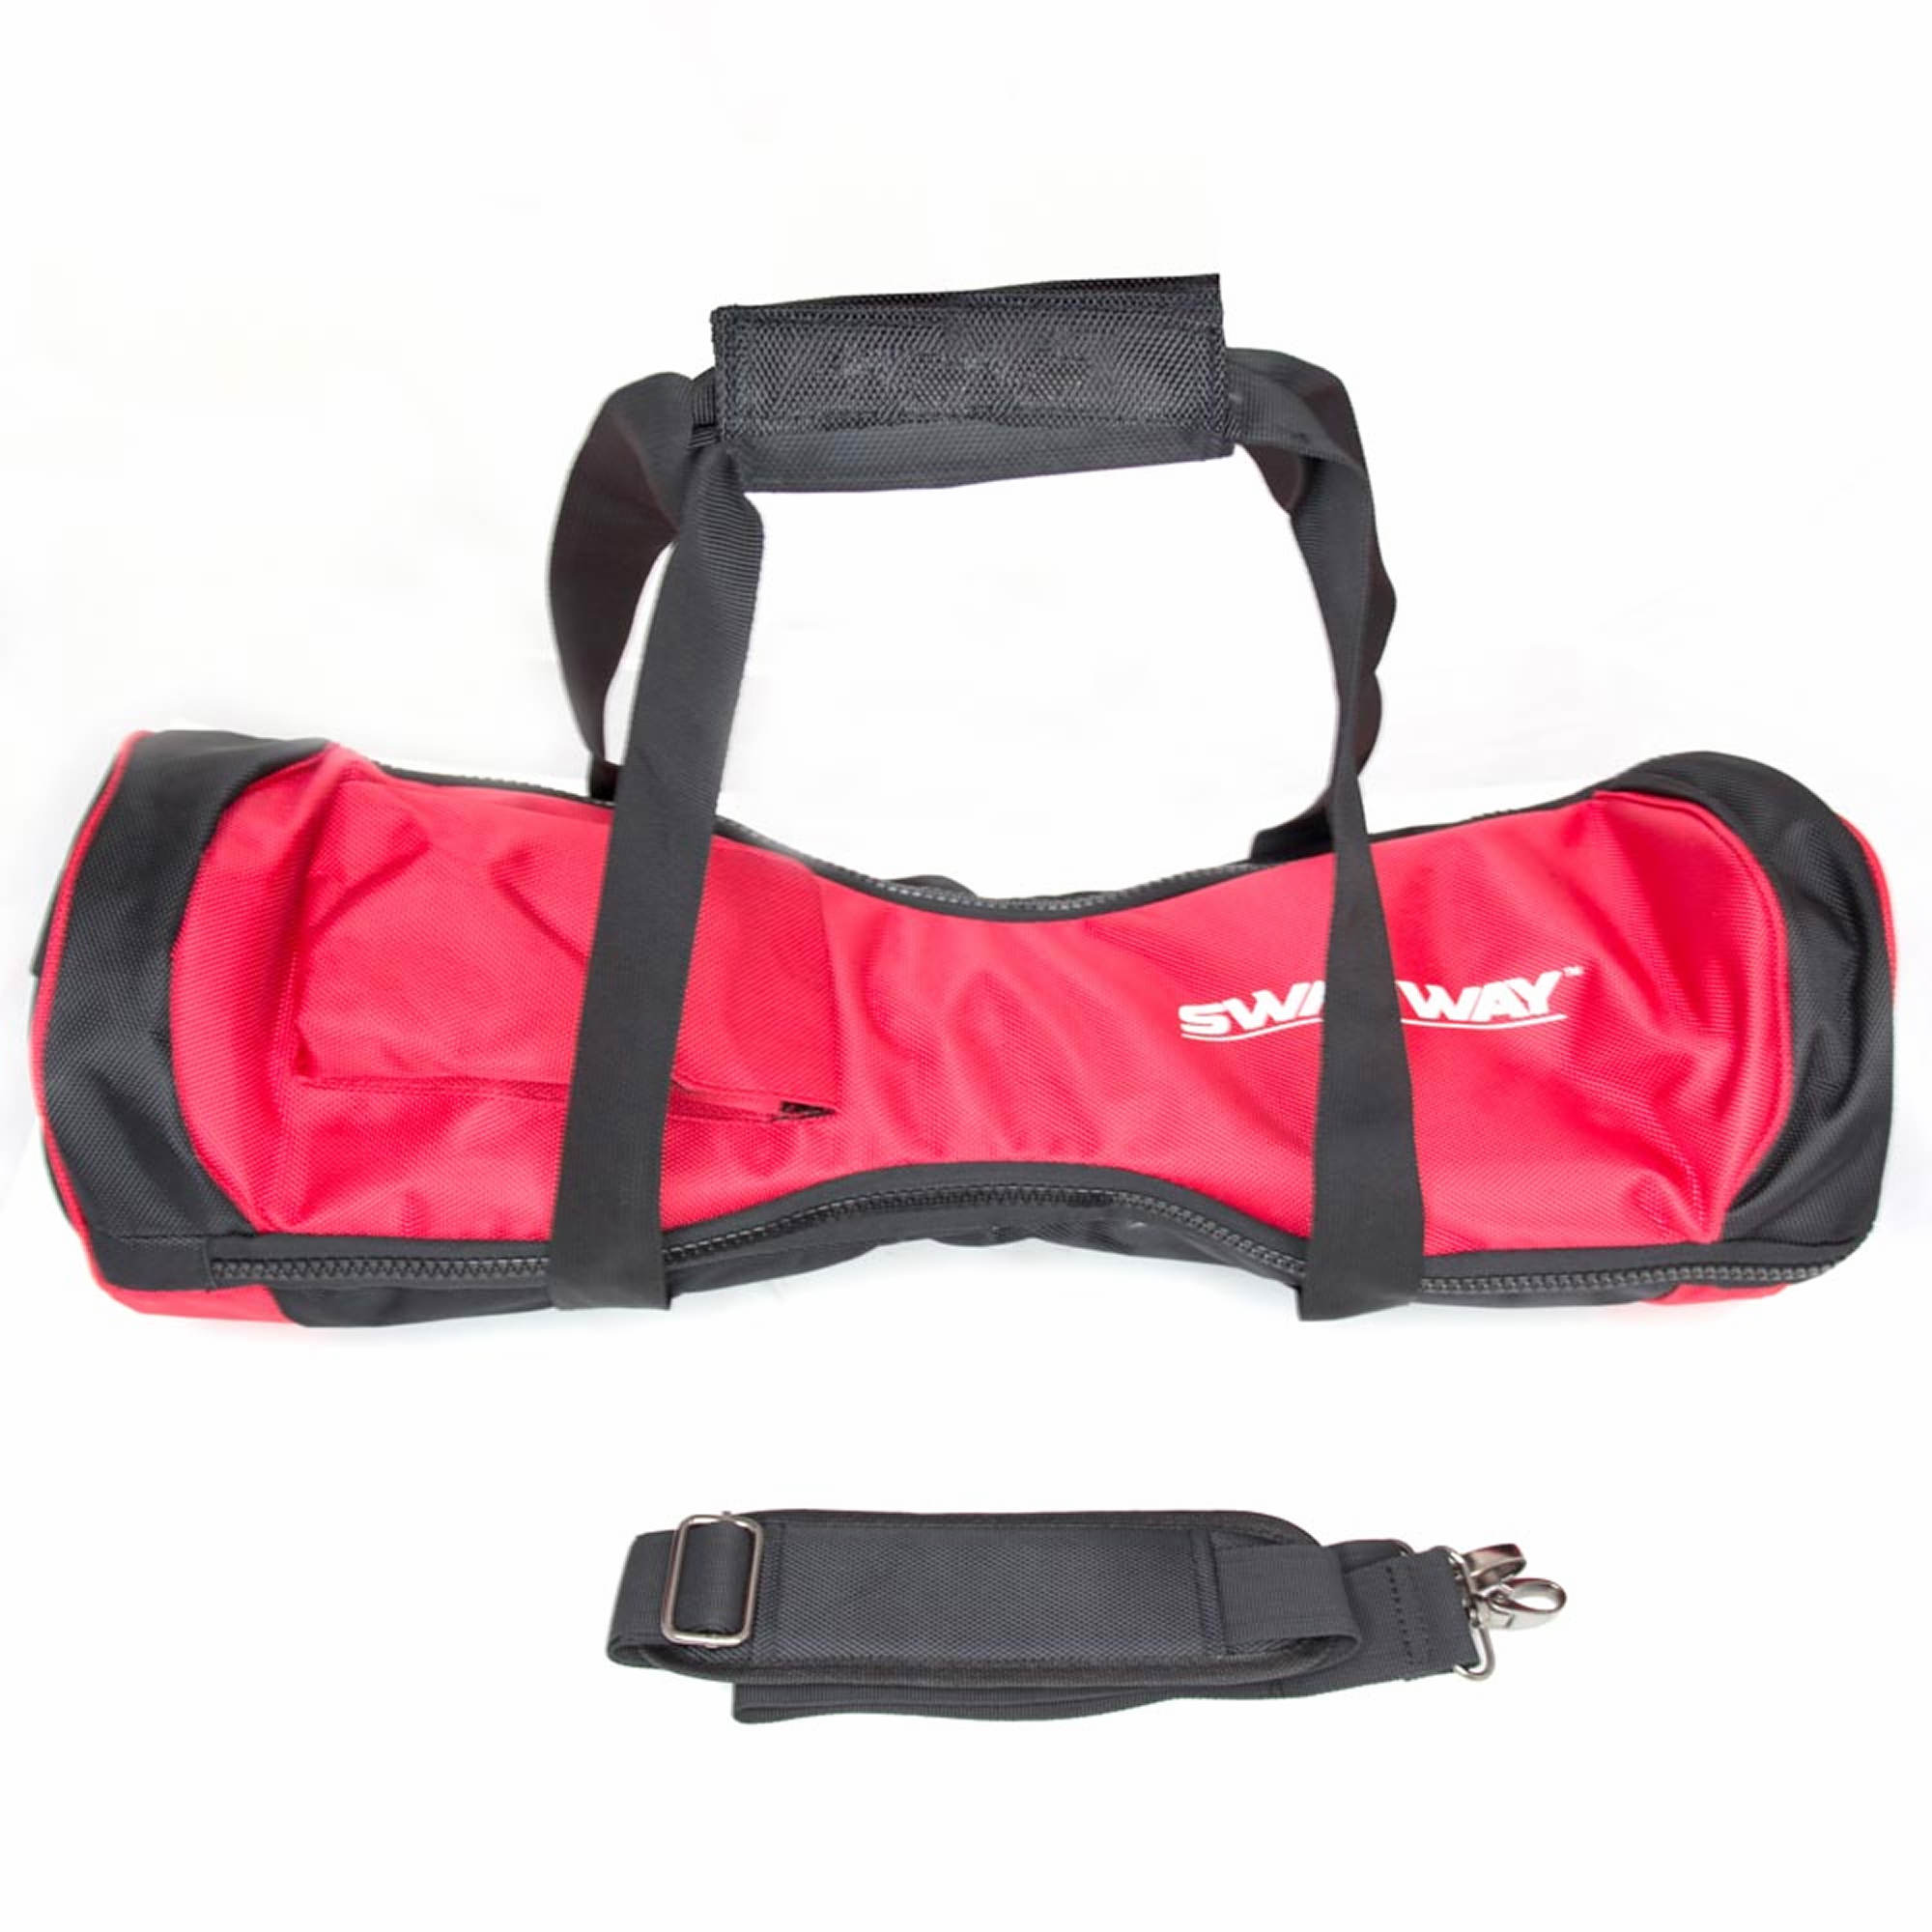 Swagway Carry Bag - Red - BJ's Wholesale Club